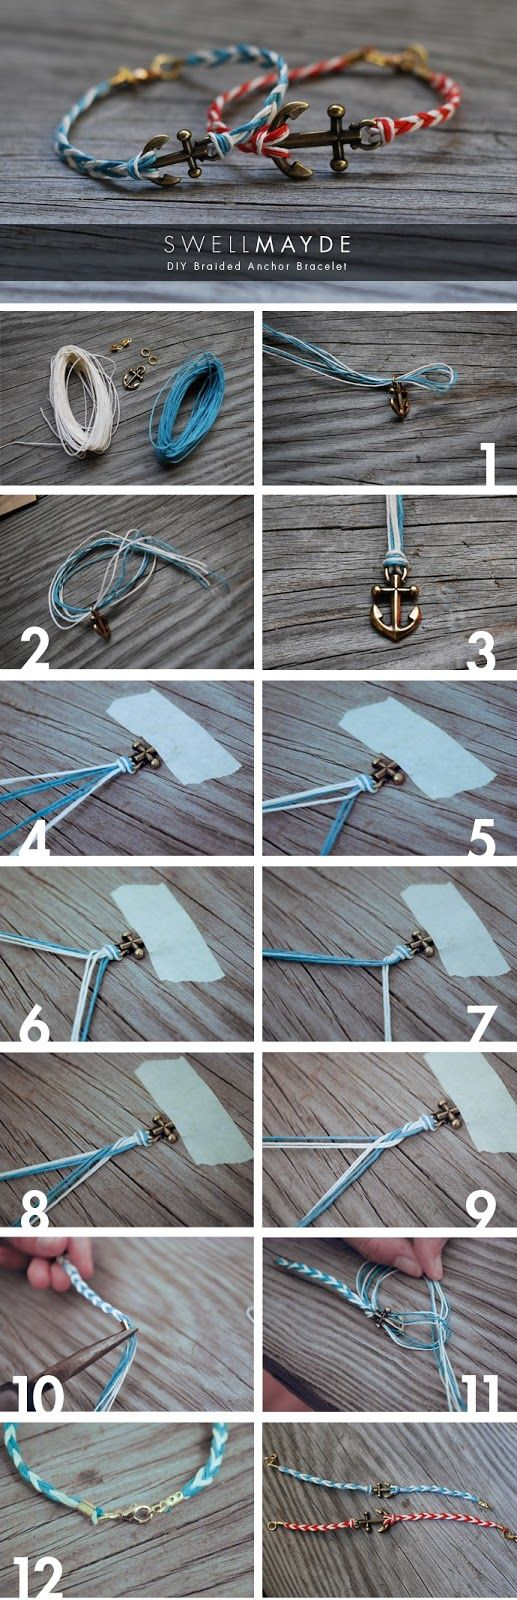 BRACELETS OF ANCHOR Materials: - hemp cord in 2 colors - metal anchor - small jump rings - 2 metal cord tips - 1 lobster claw - pliers - scissors - masking tape